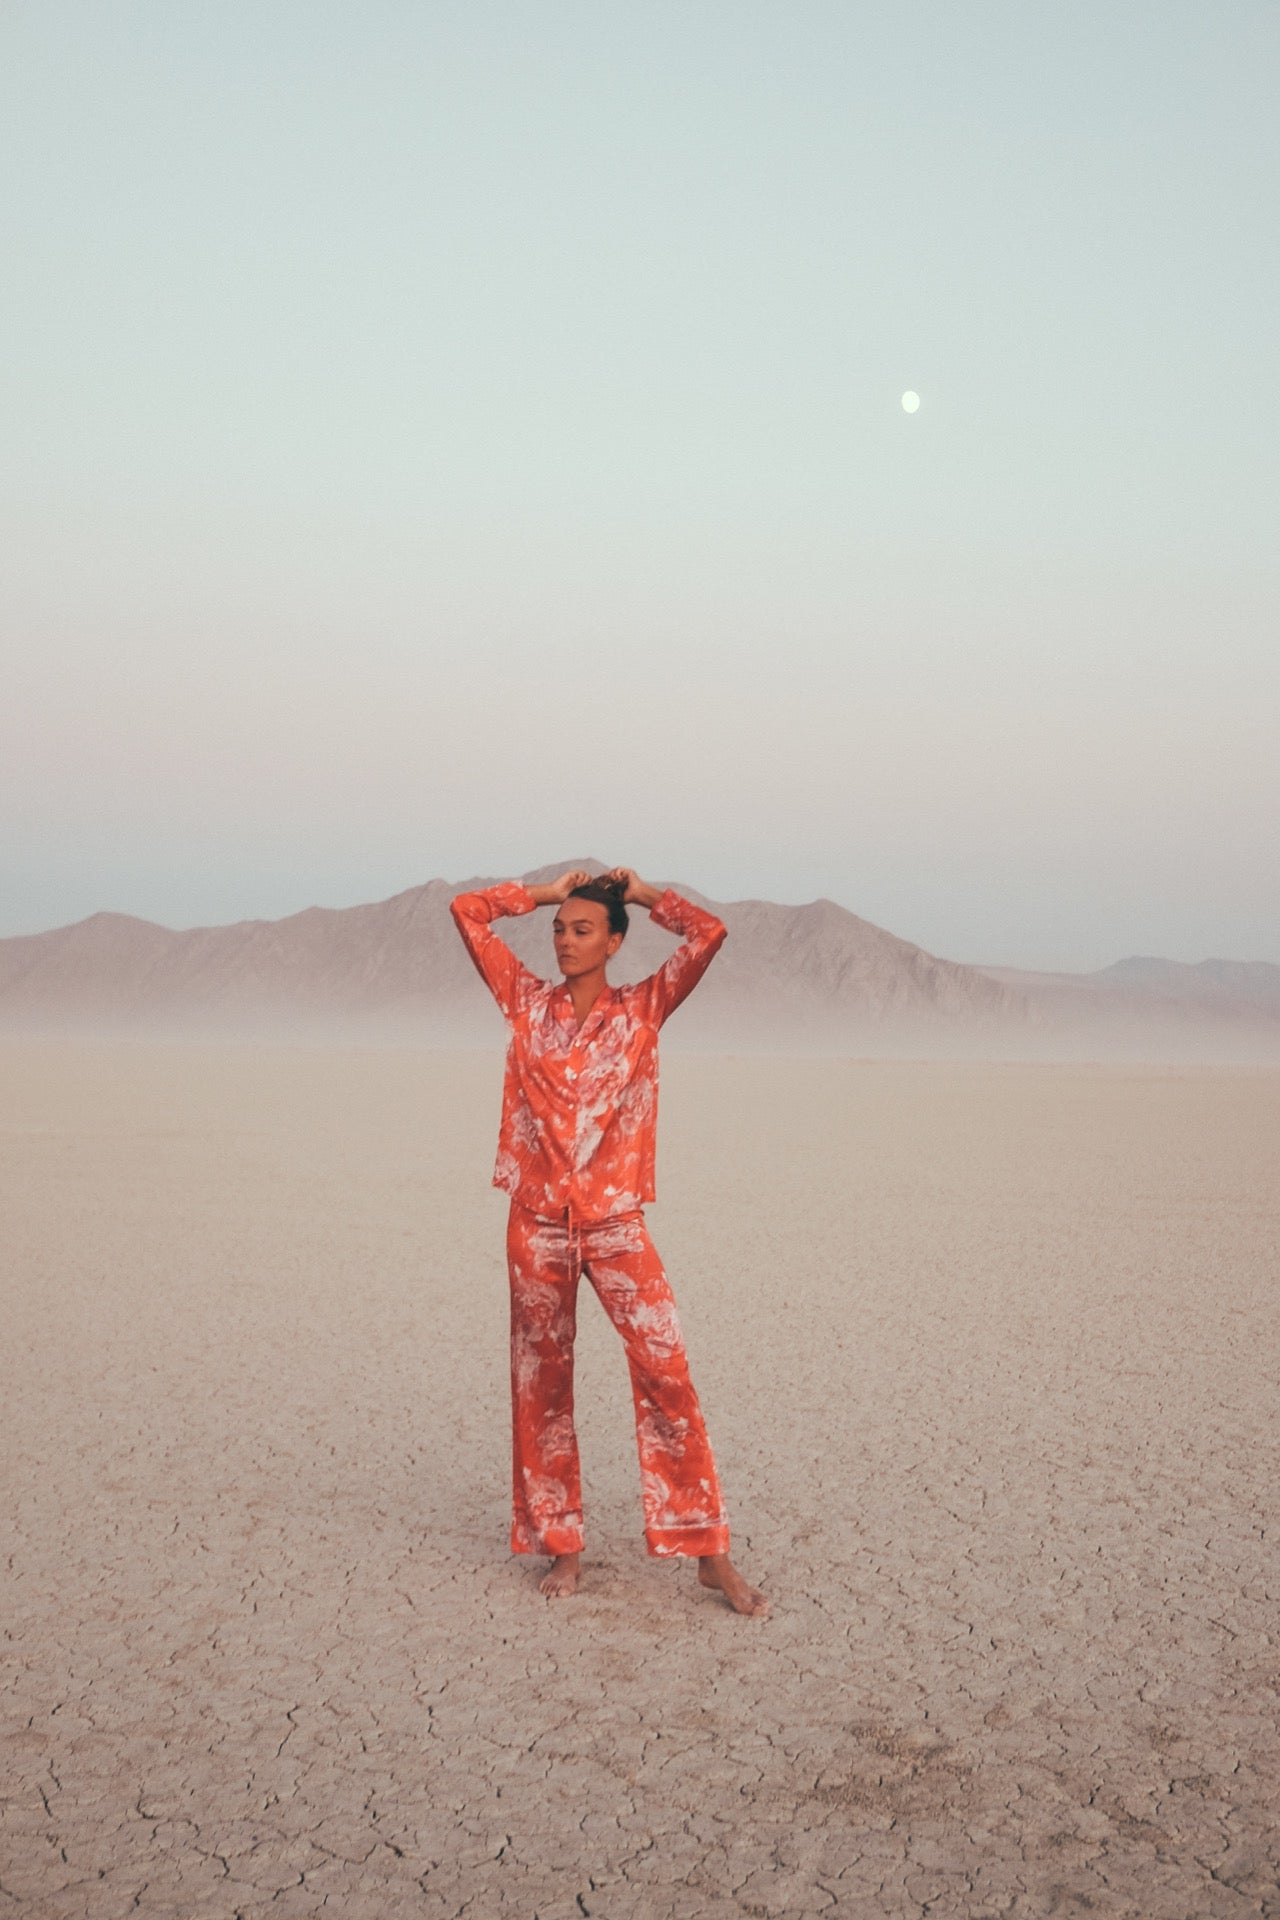 RADICE - Loungewear, Sleepwear as Burning Man Outfit